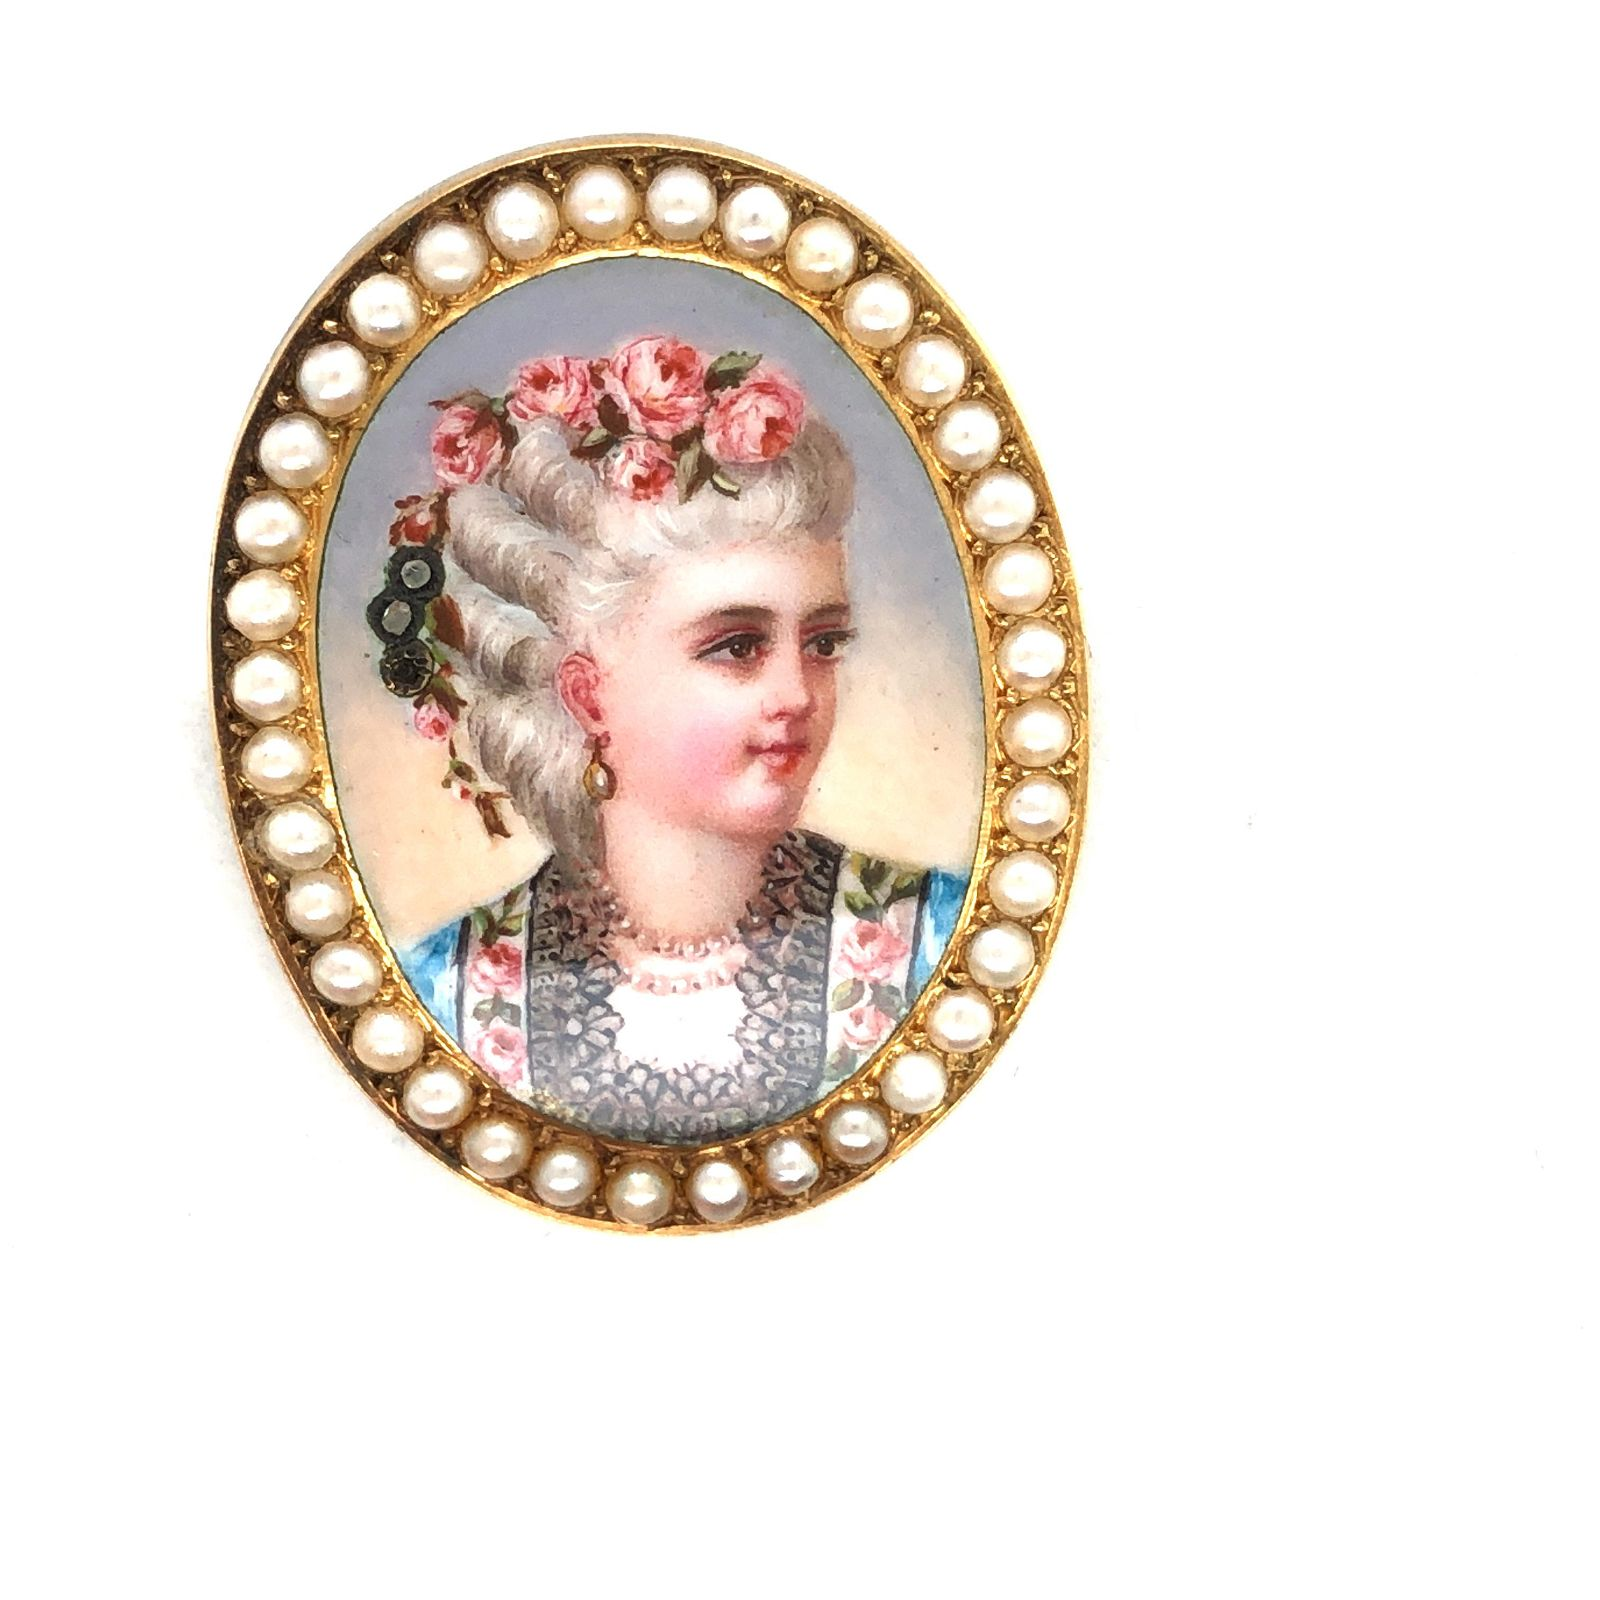 French 14 k. yellow gold enamel and pearl brooch